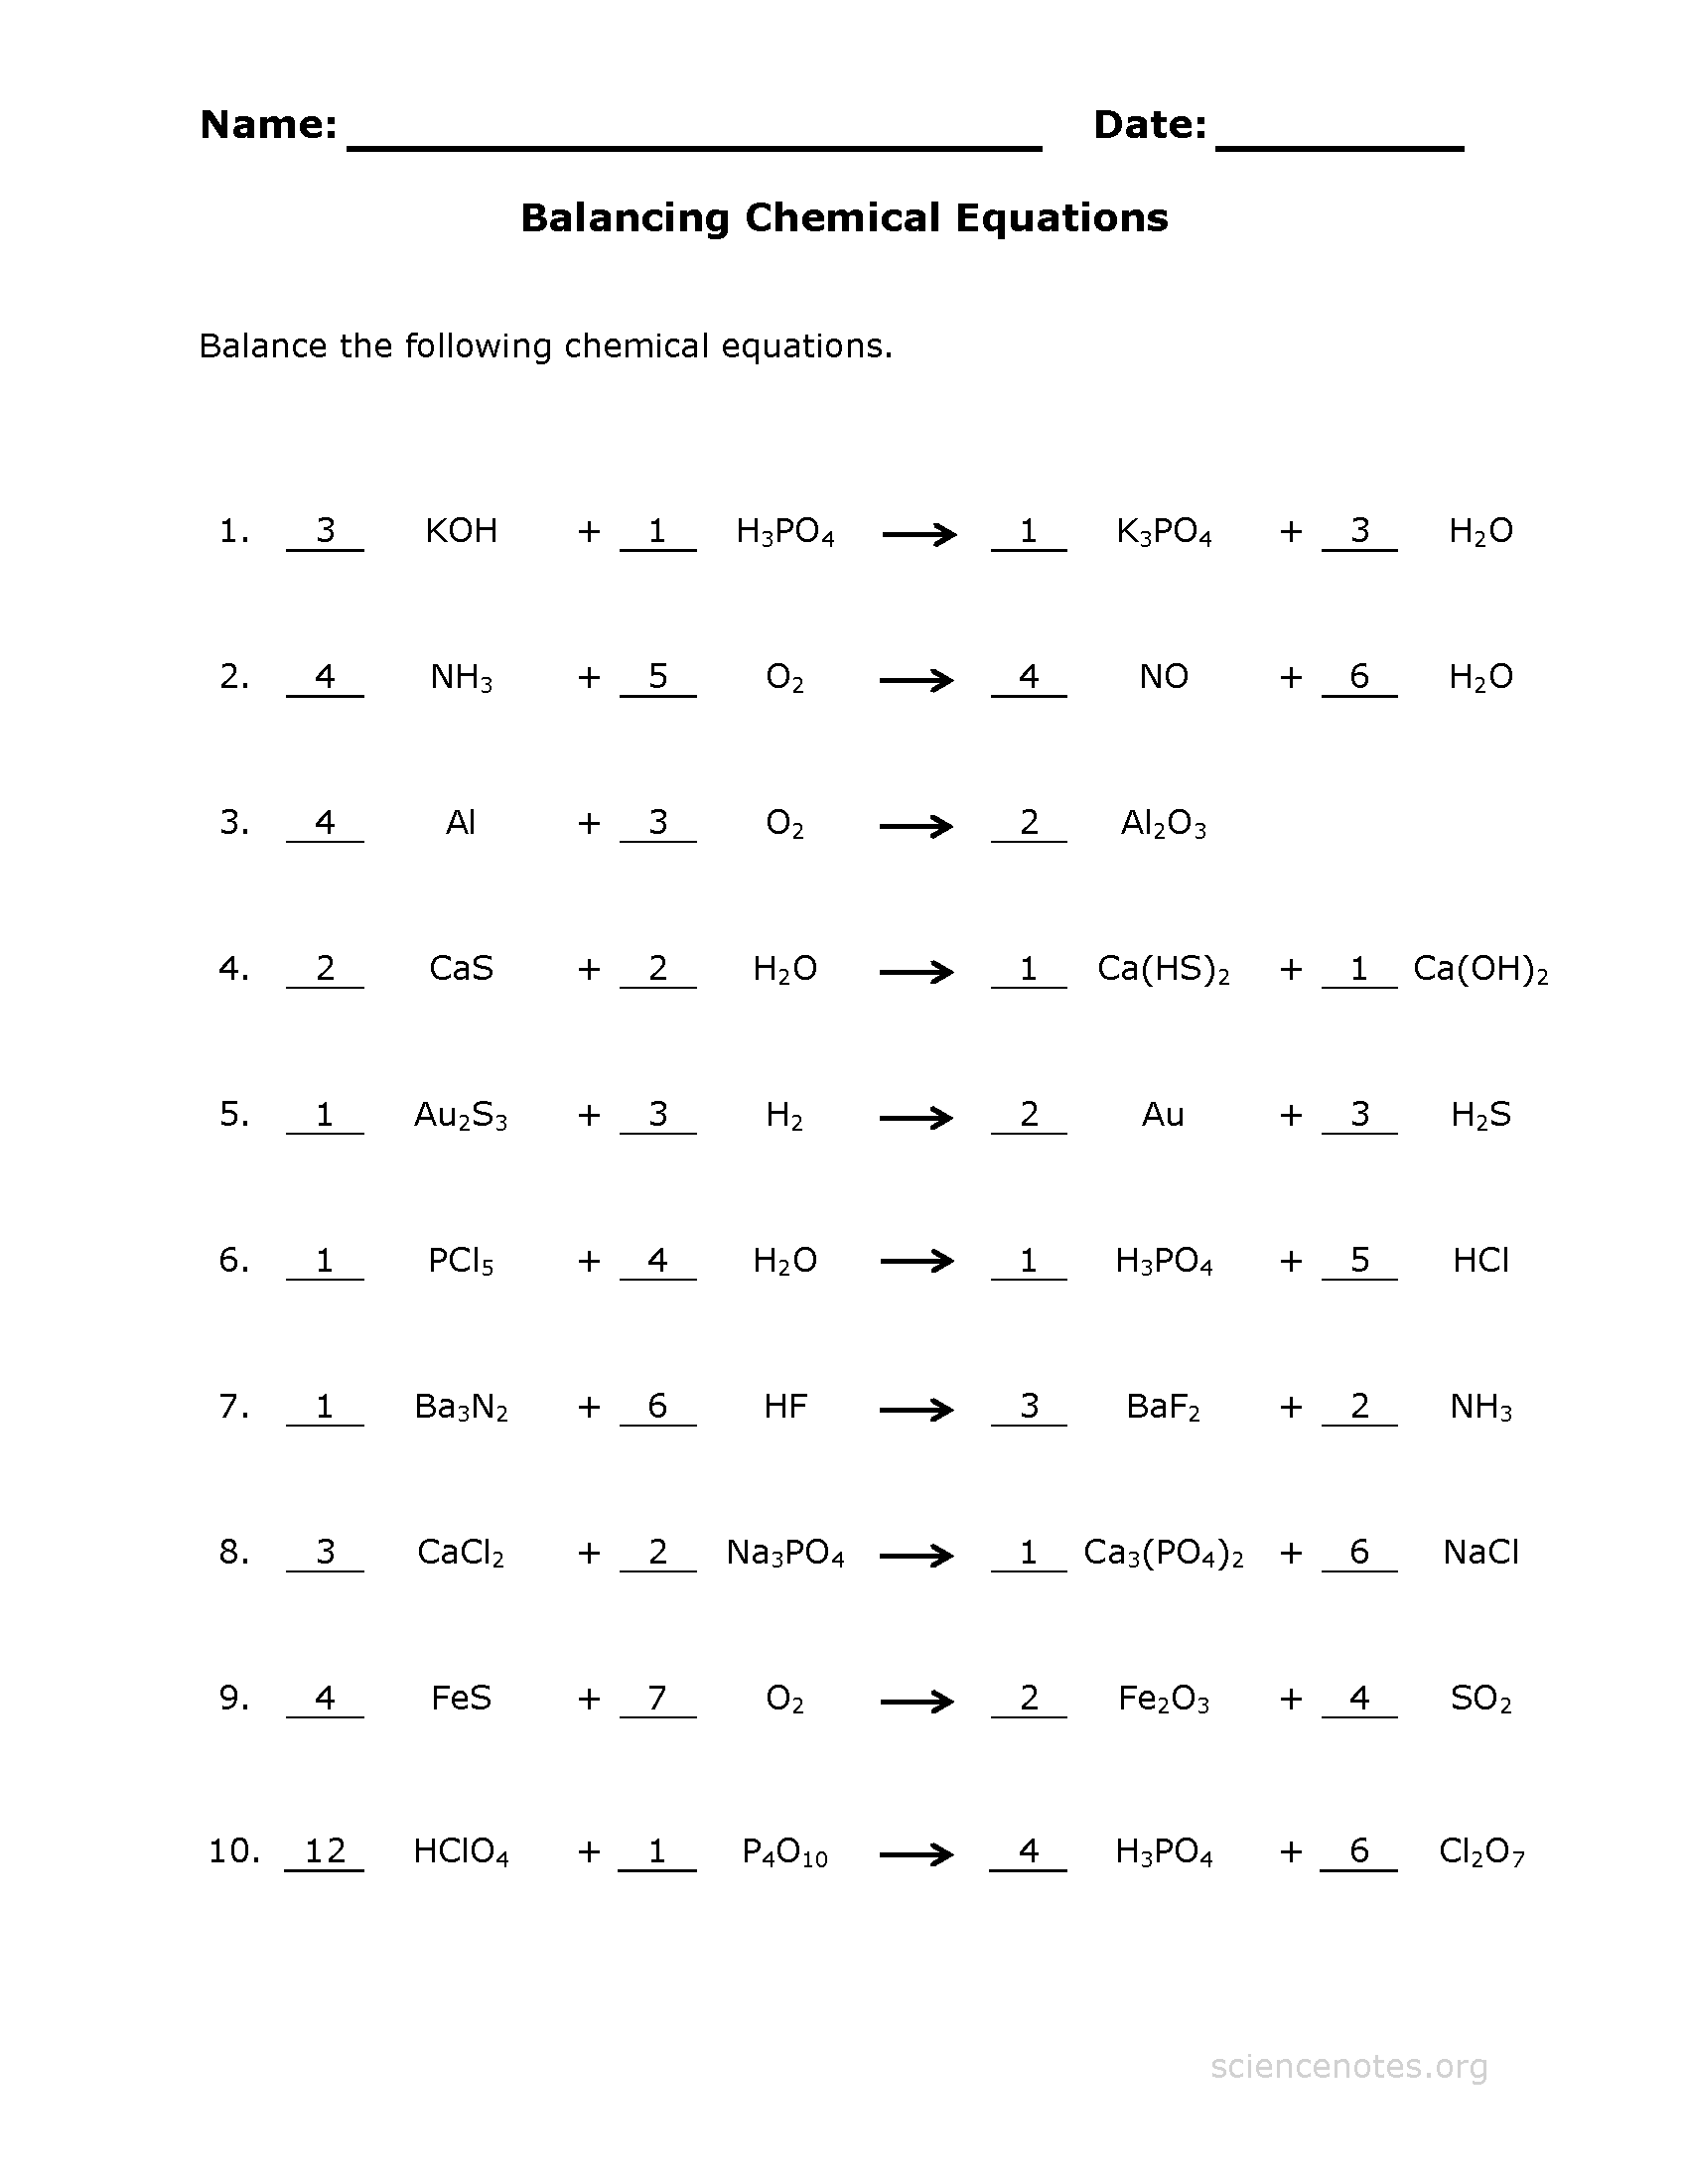 Check out our other Balancing Chemical Equation Worksheets